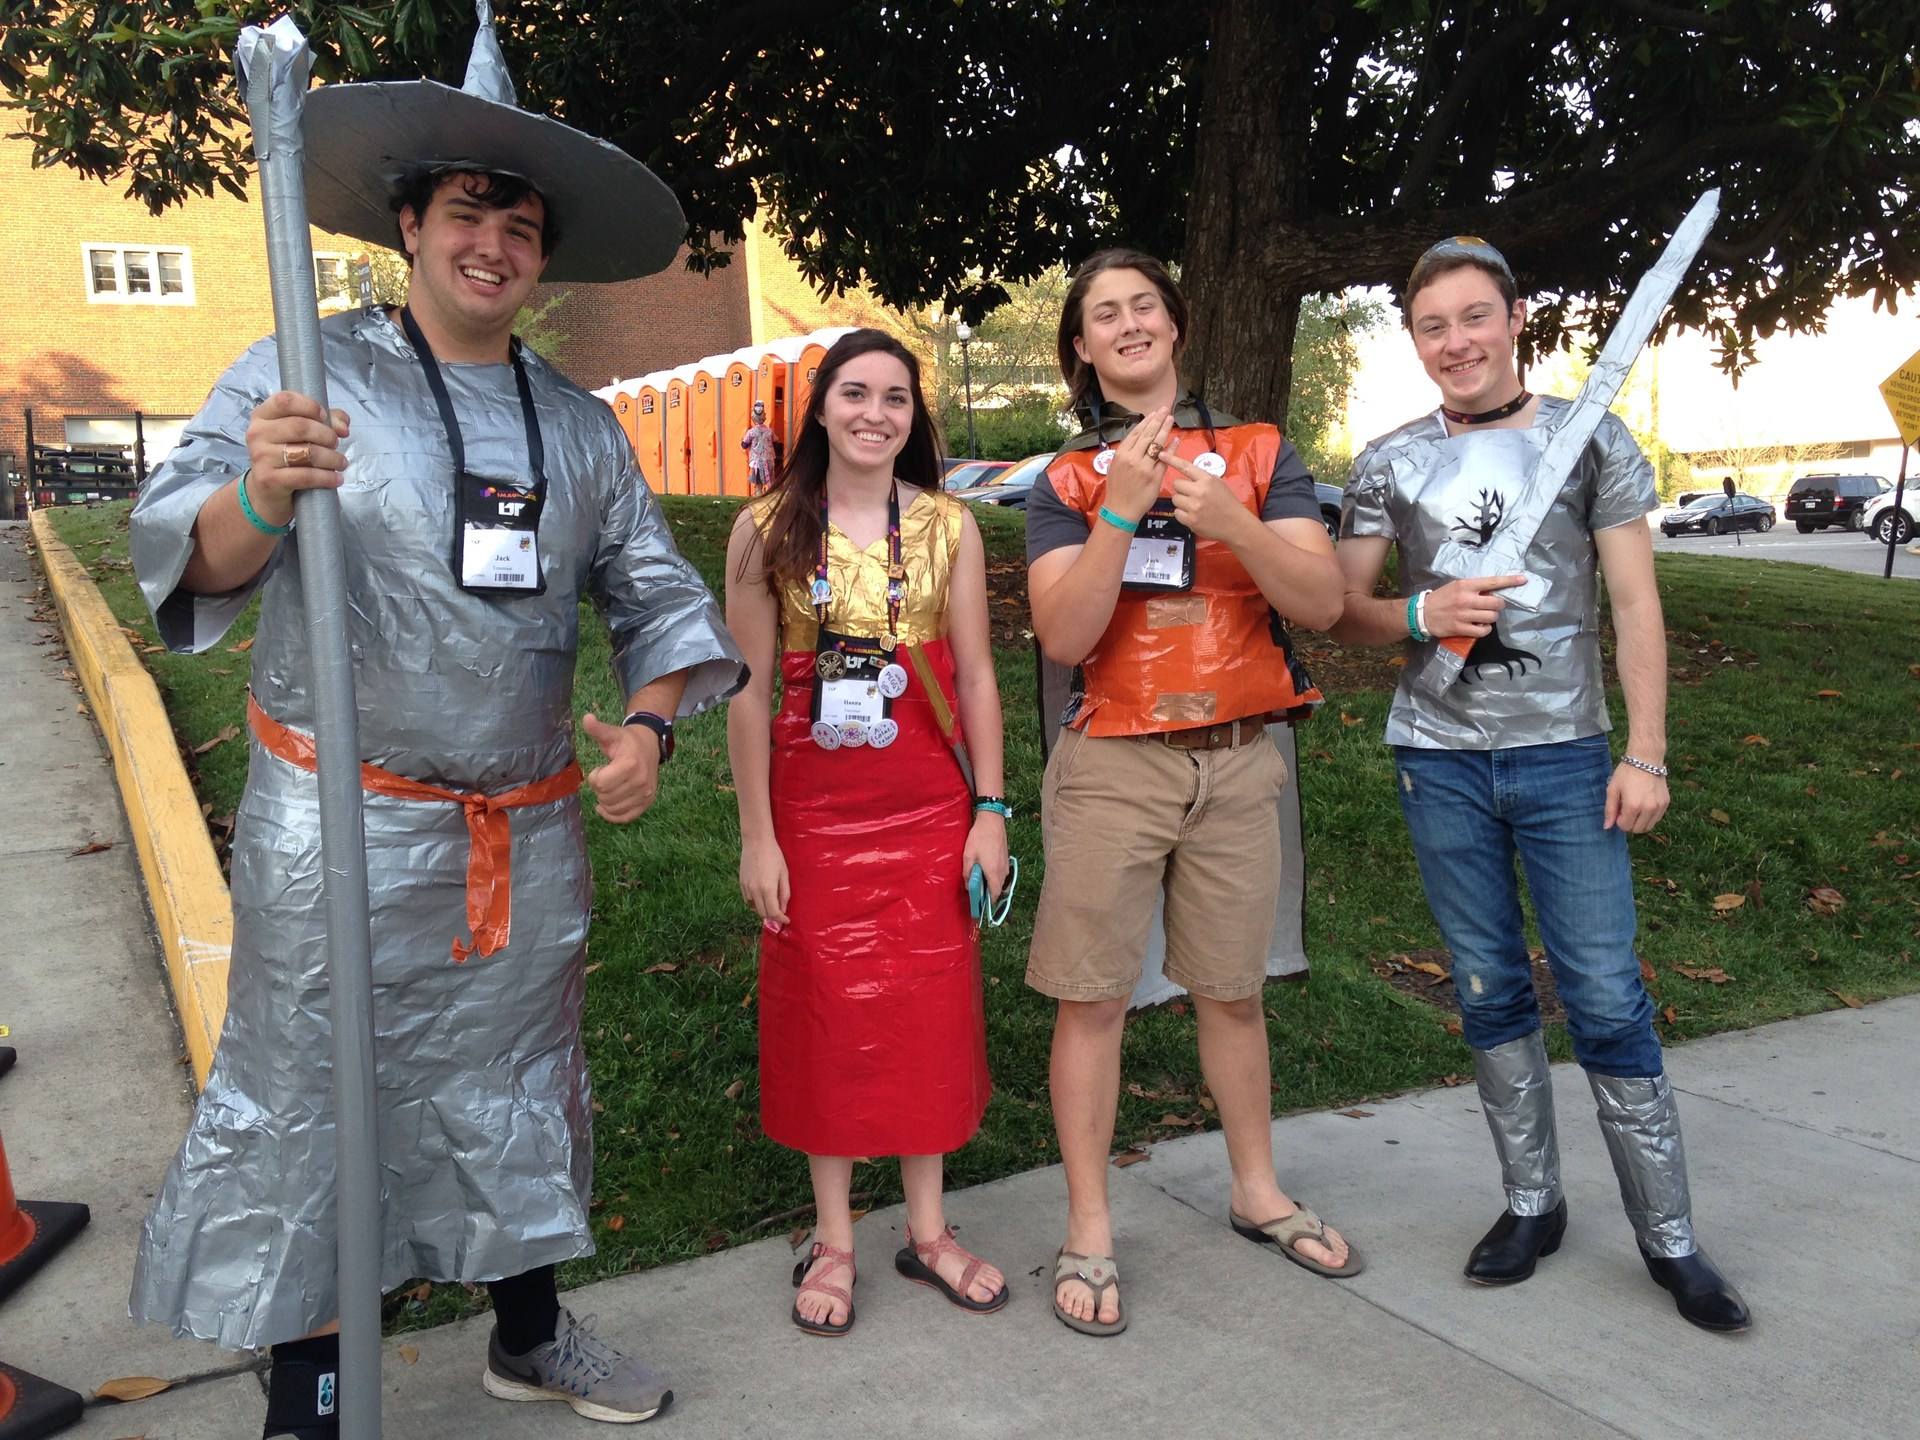 DI team in costumes made of duct tape